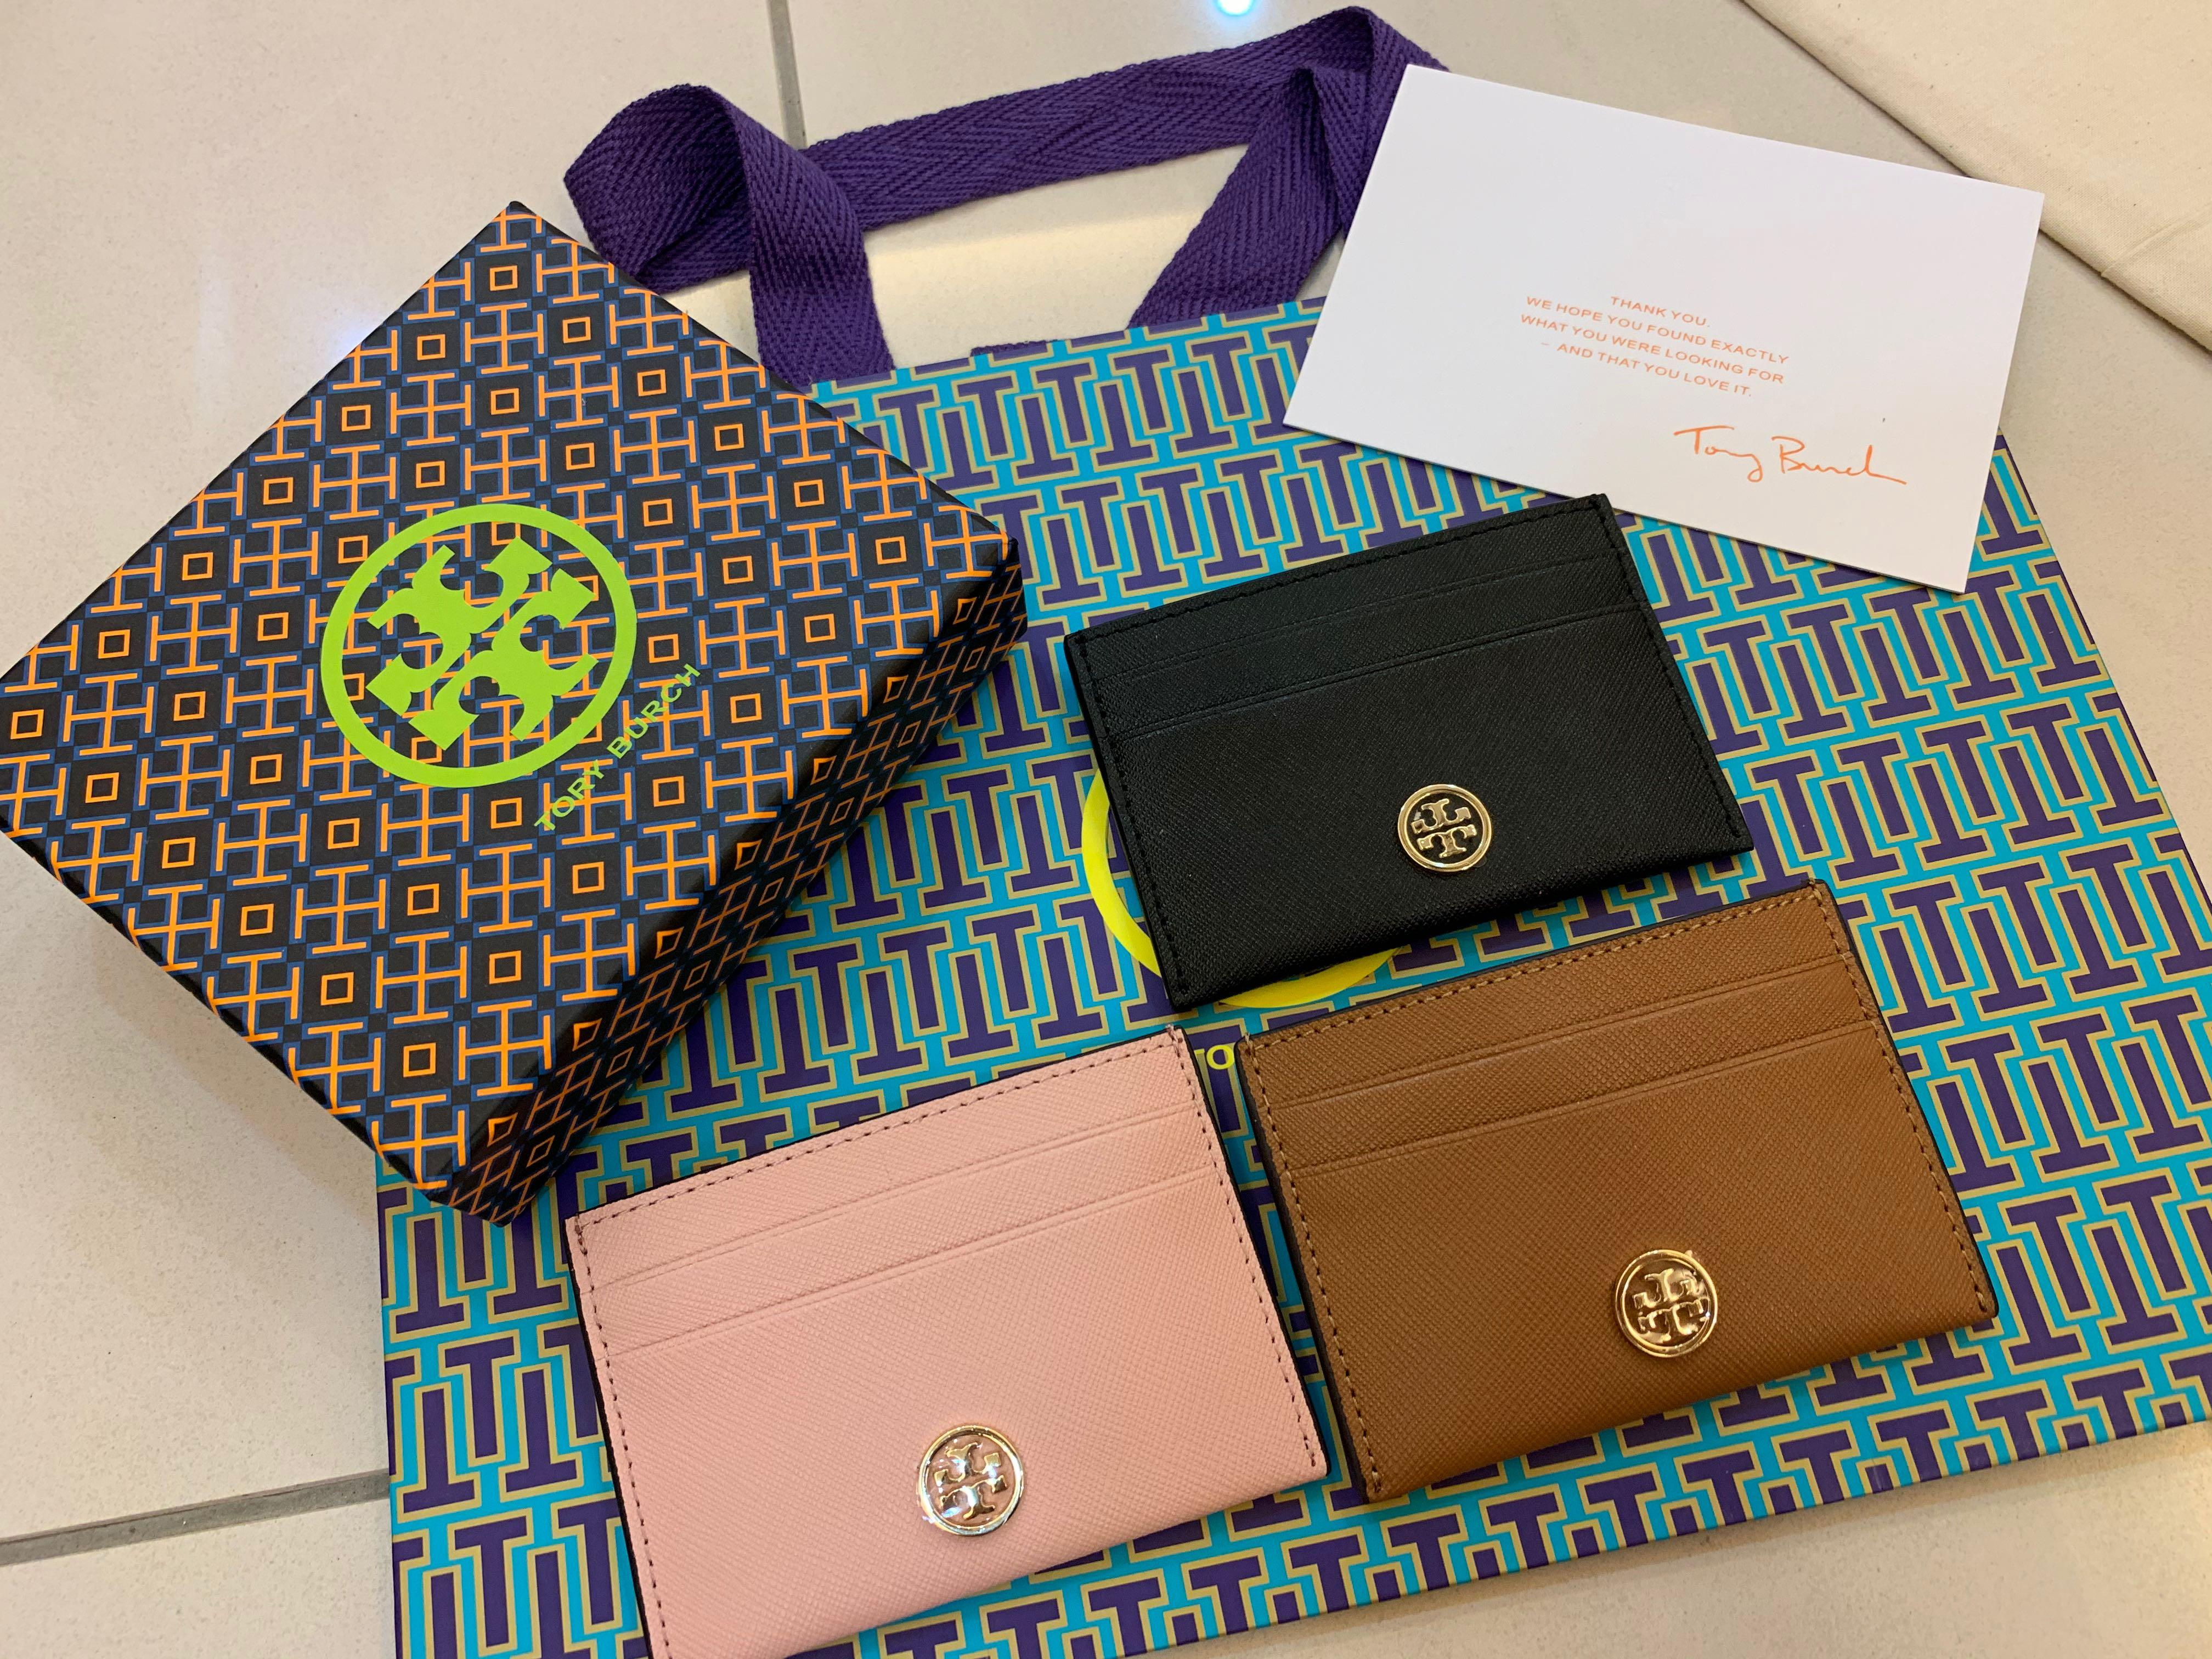 Ready Stock Authentic Tory Burch card case